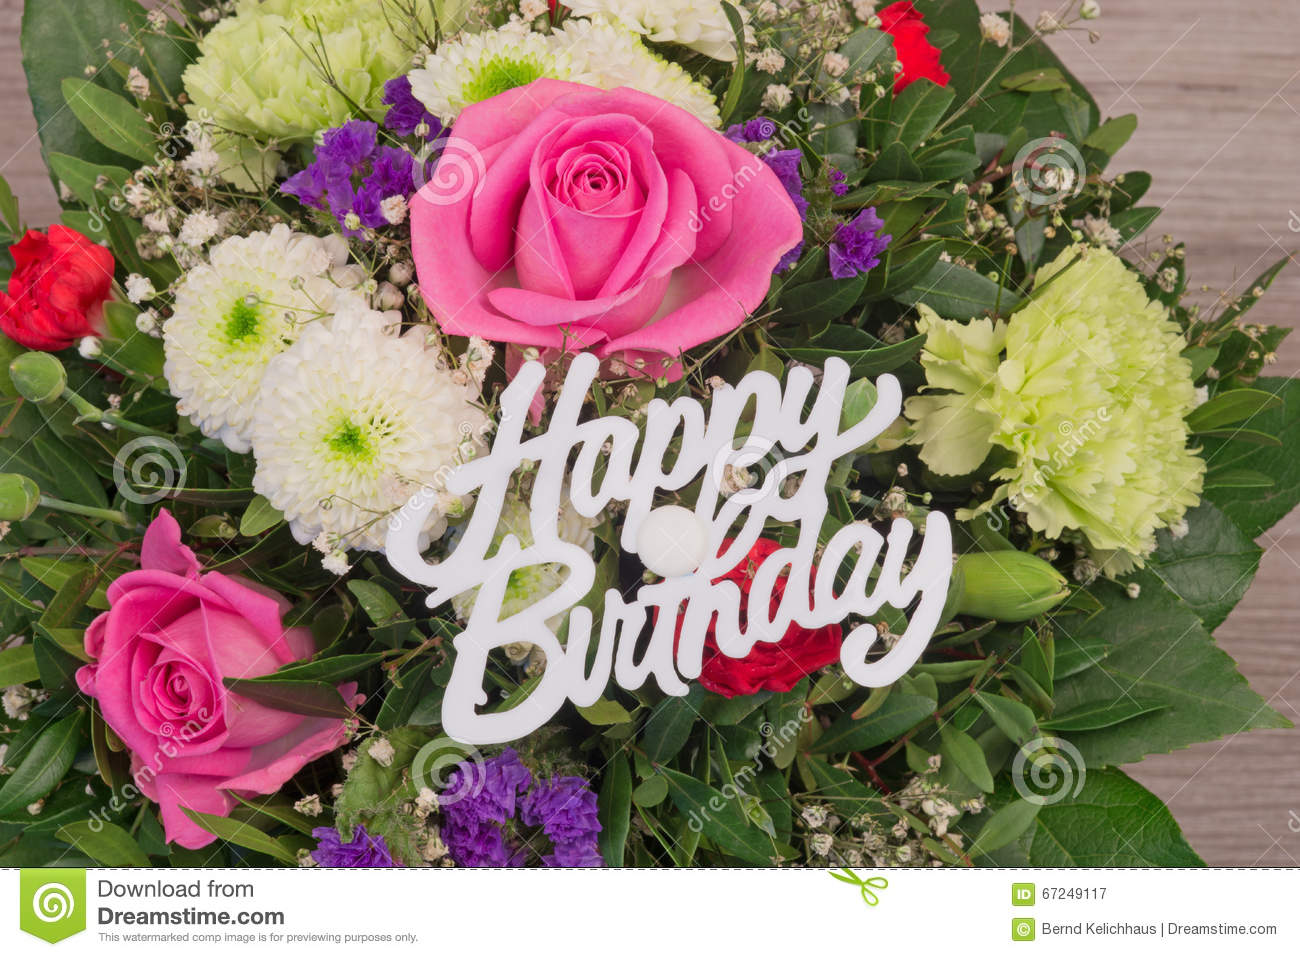 Flower bouquet with text happy birthday stock image image of bloom flower bouquet with text happy birthday izmirmasajfo Image collections